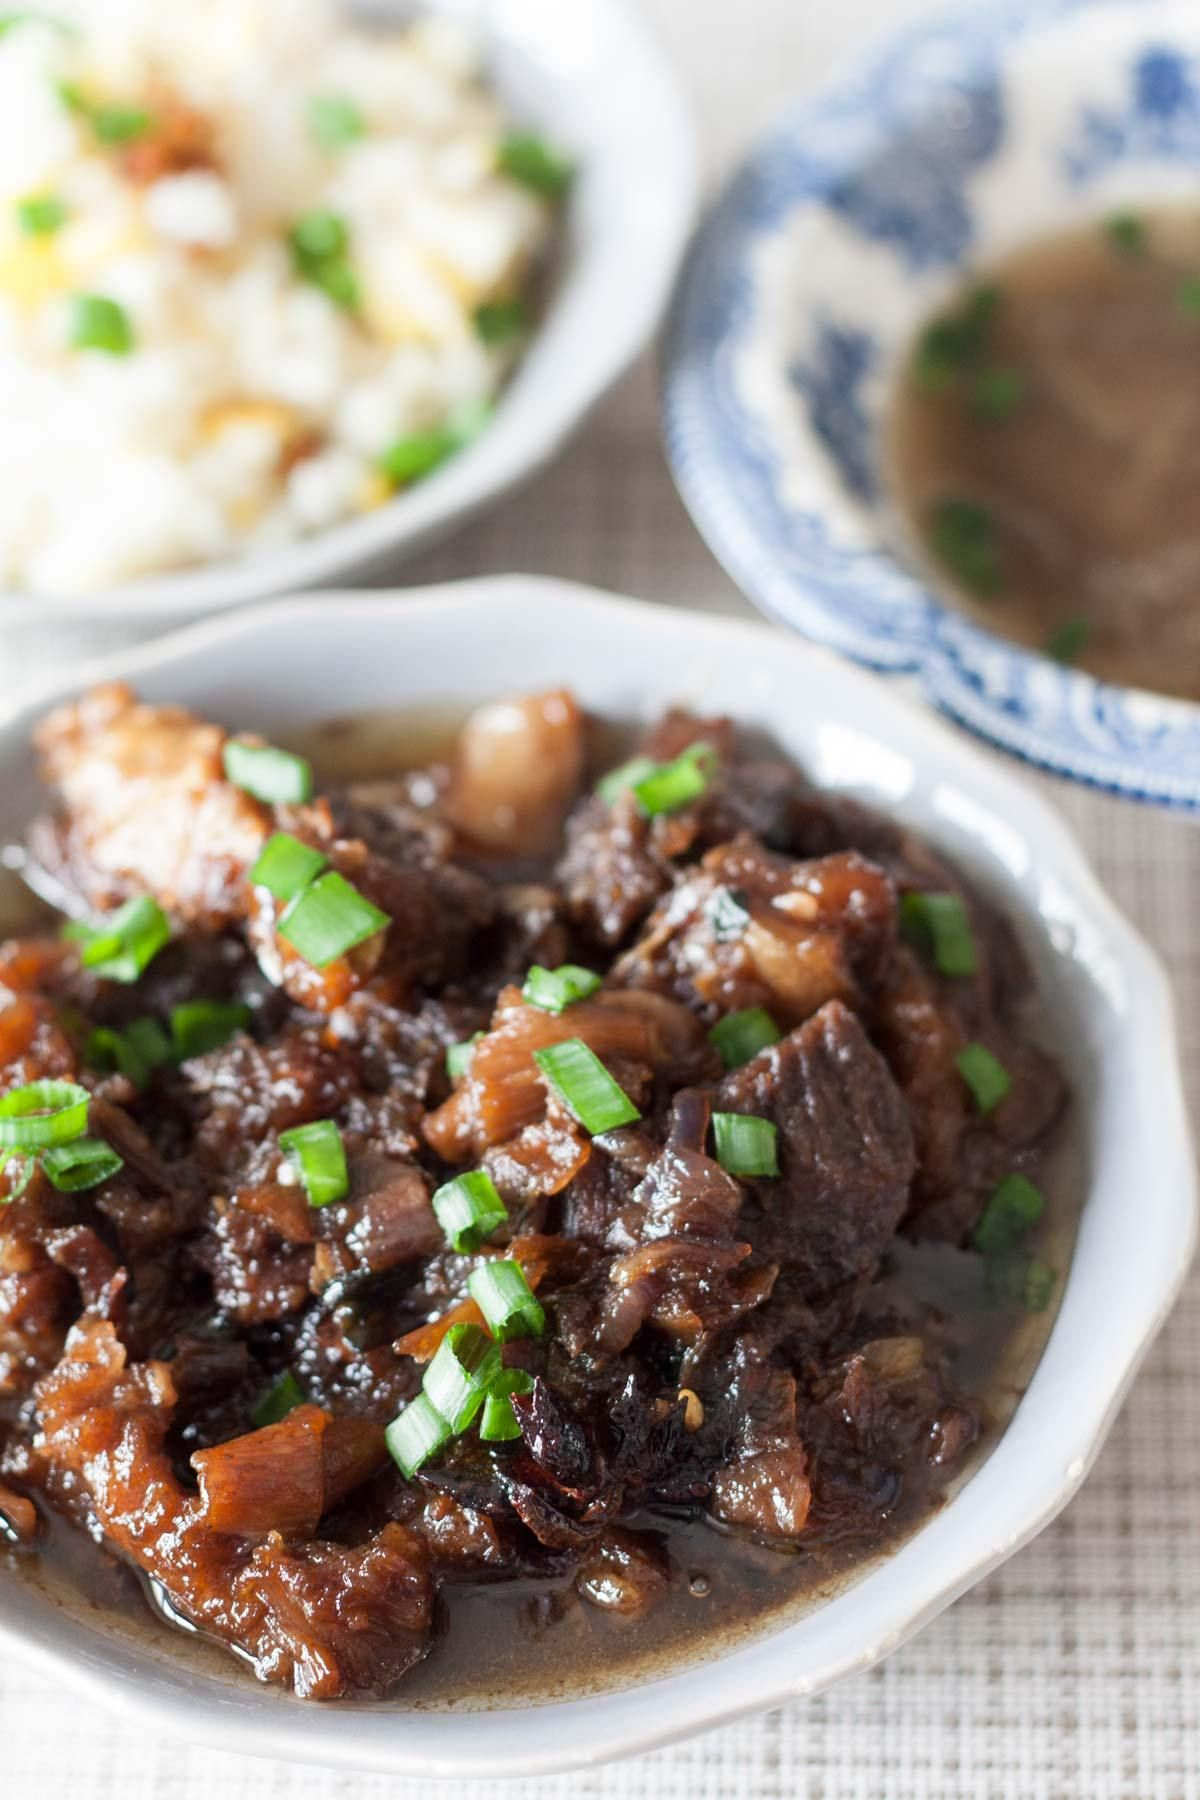 Filipino Beef Pares | Recipe (With images) | Beef pares ...